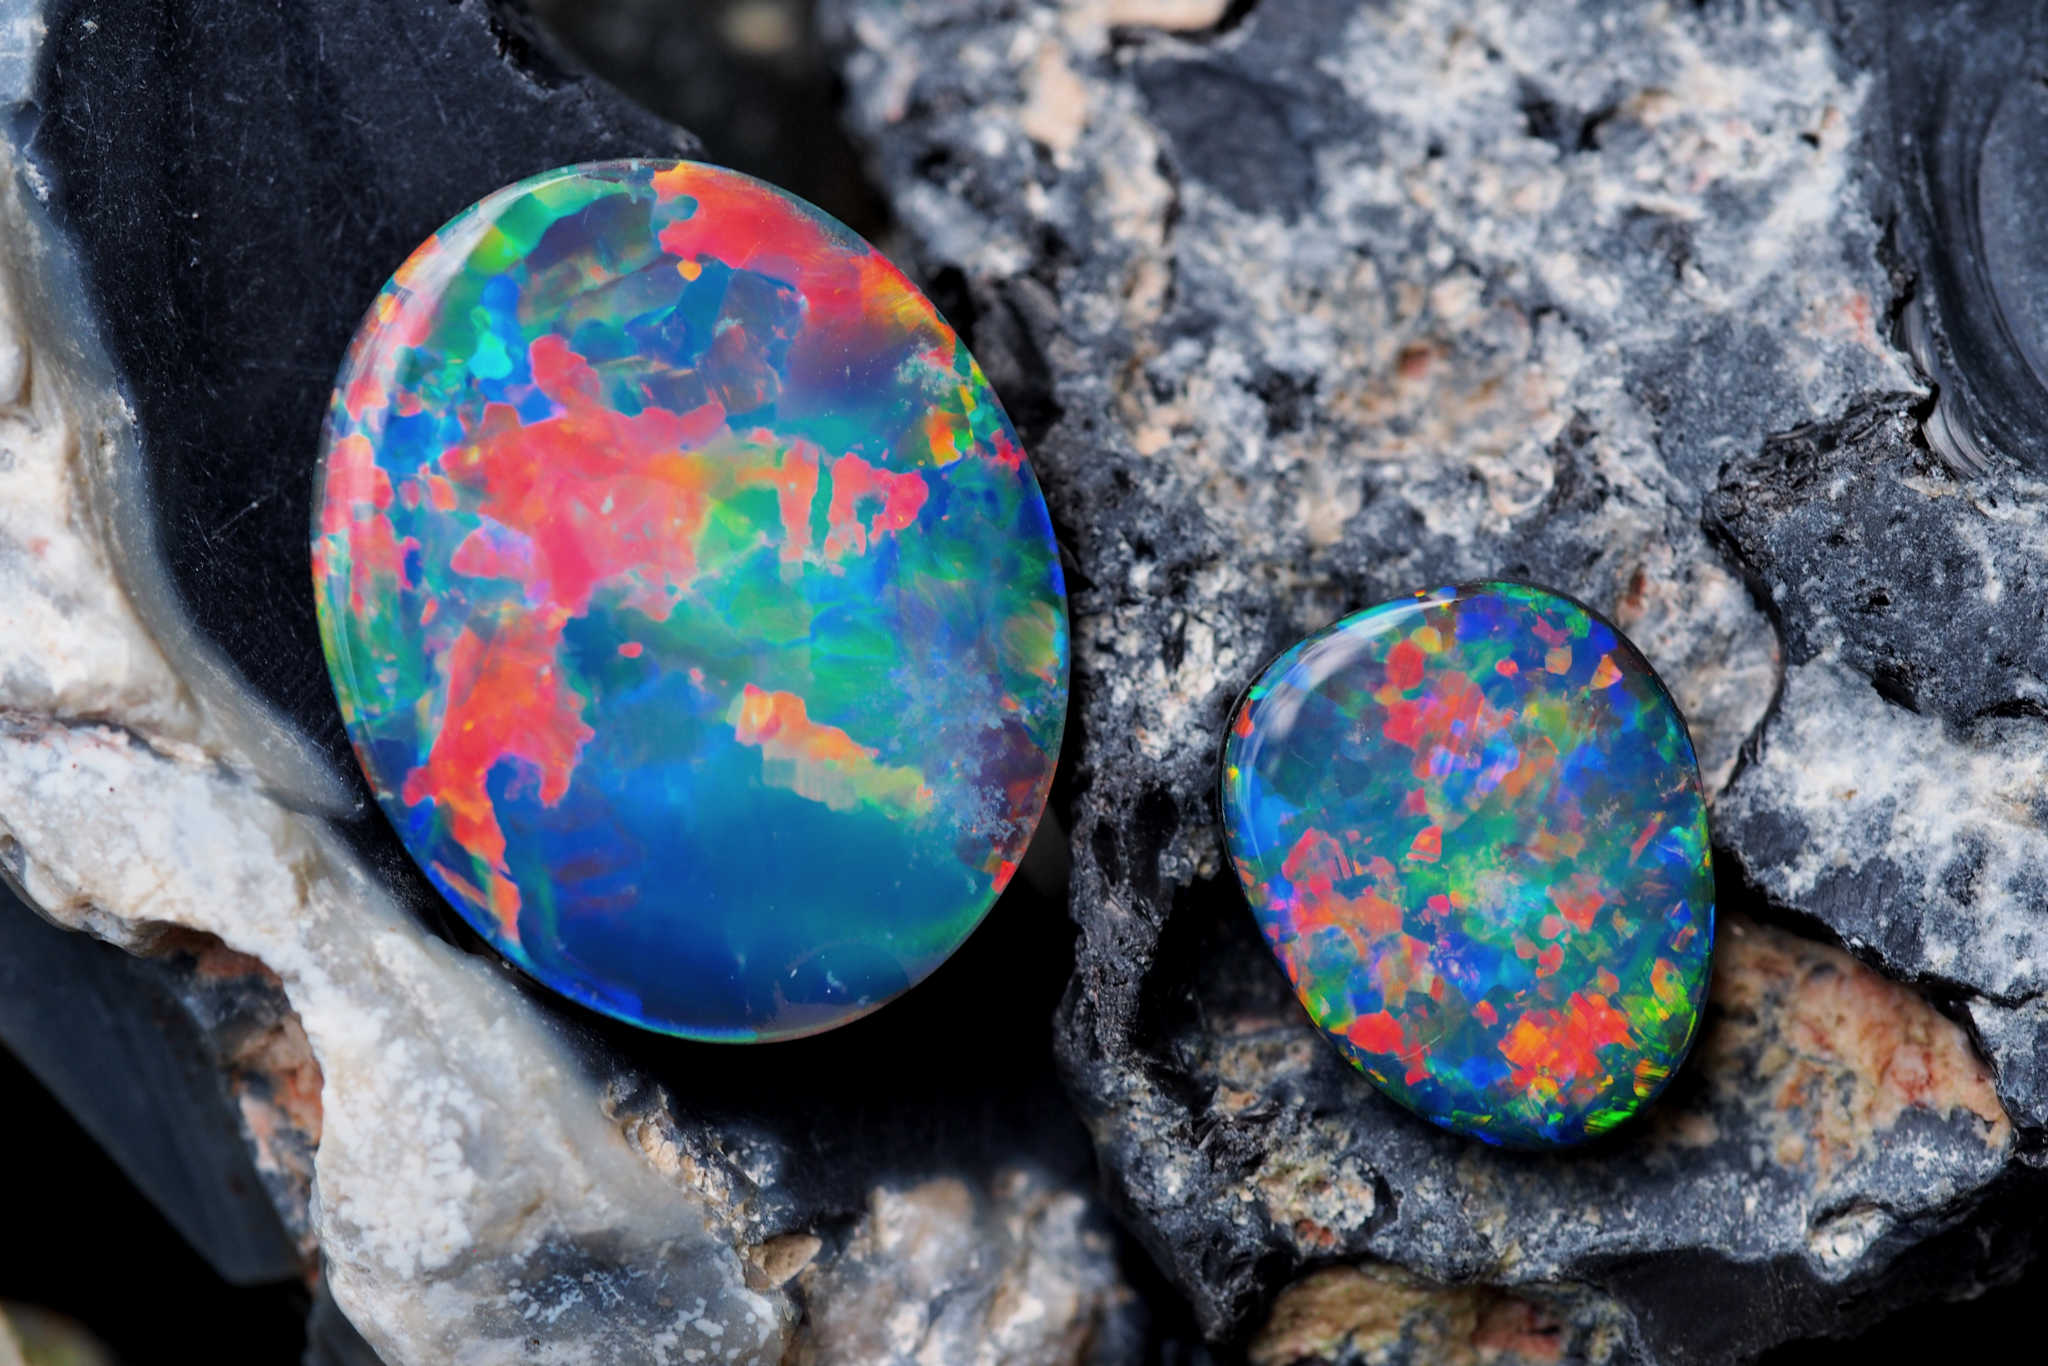 Doublets & Triplets - Doublet and Triplet Opals are composite stones that contain a thin slice of colourful, natural opal. Doublet opals are set against a layer of dark potch, while triplet opals also feature a clear domed quartz crystal cap. Doublet and triplet opals can be an affordable alternative to purchasing a solid black opal.